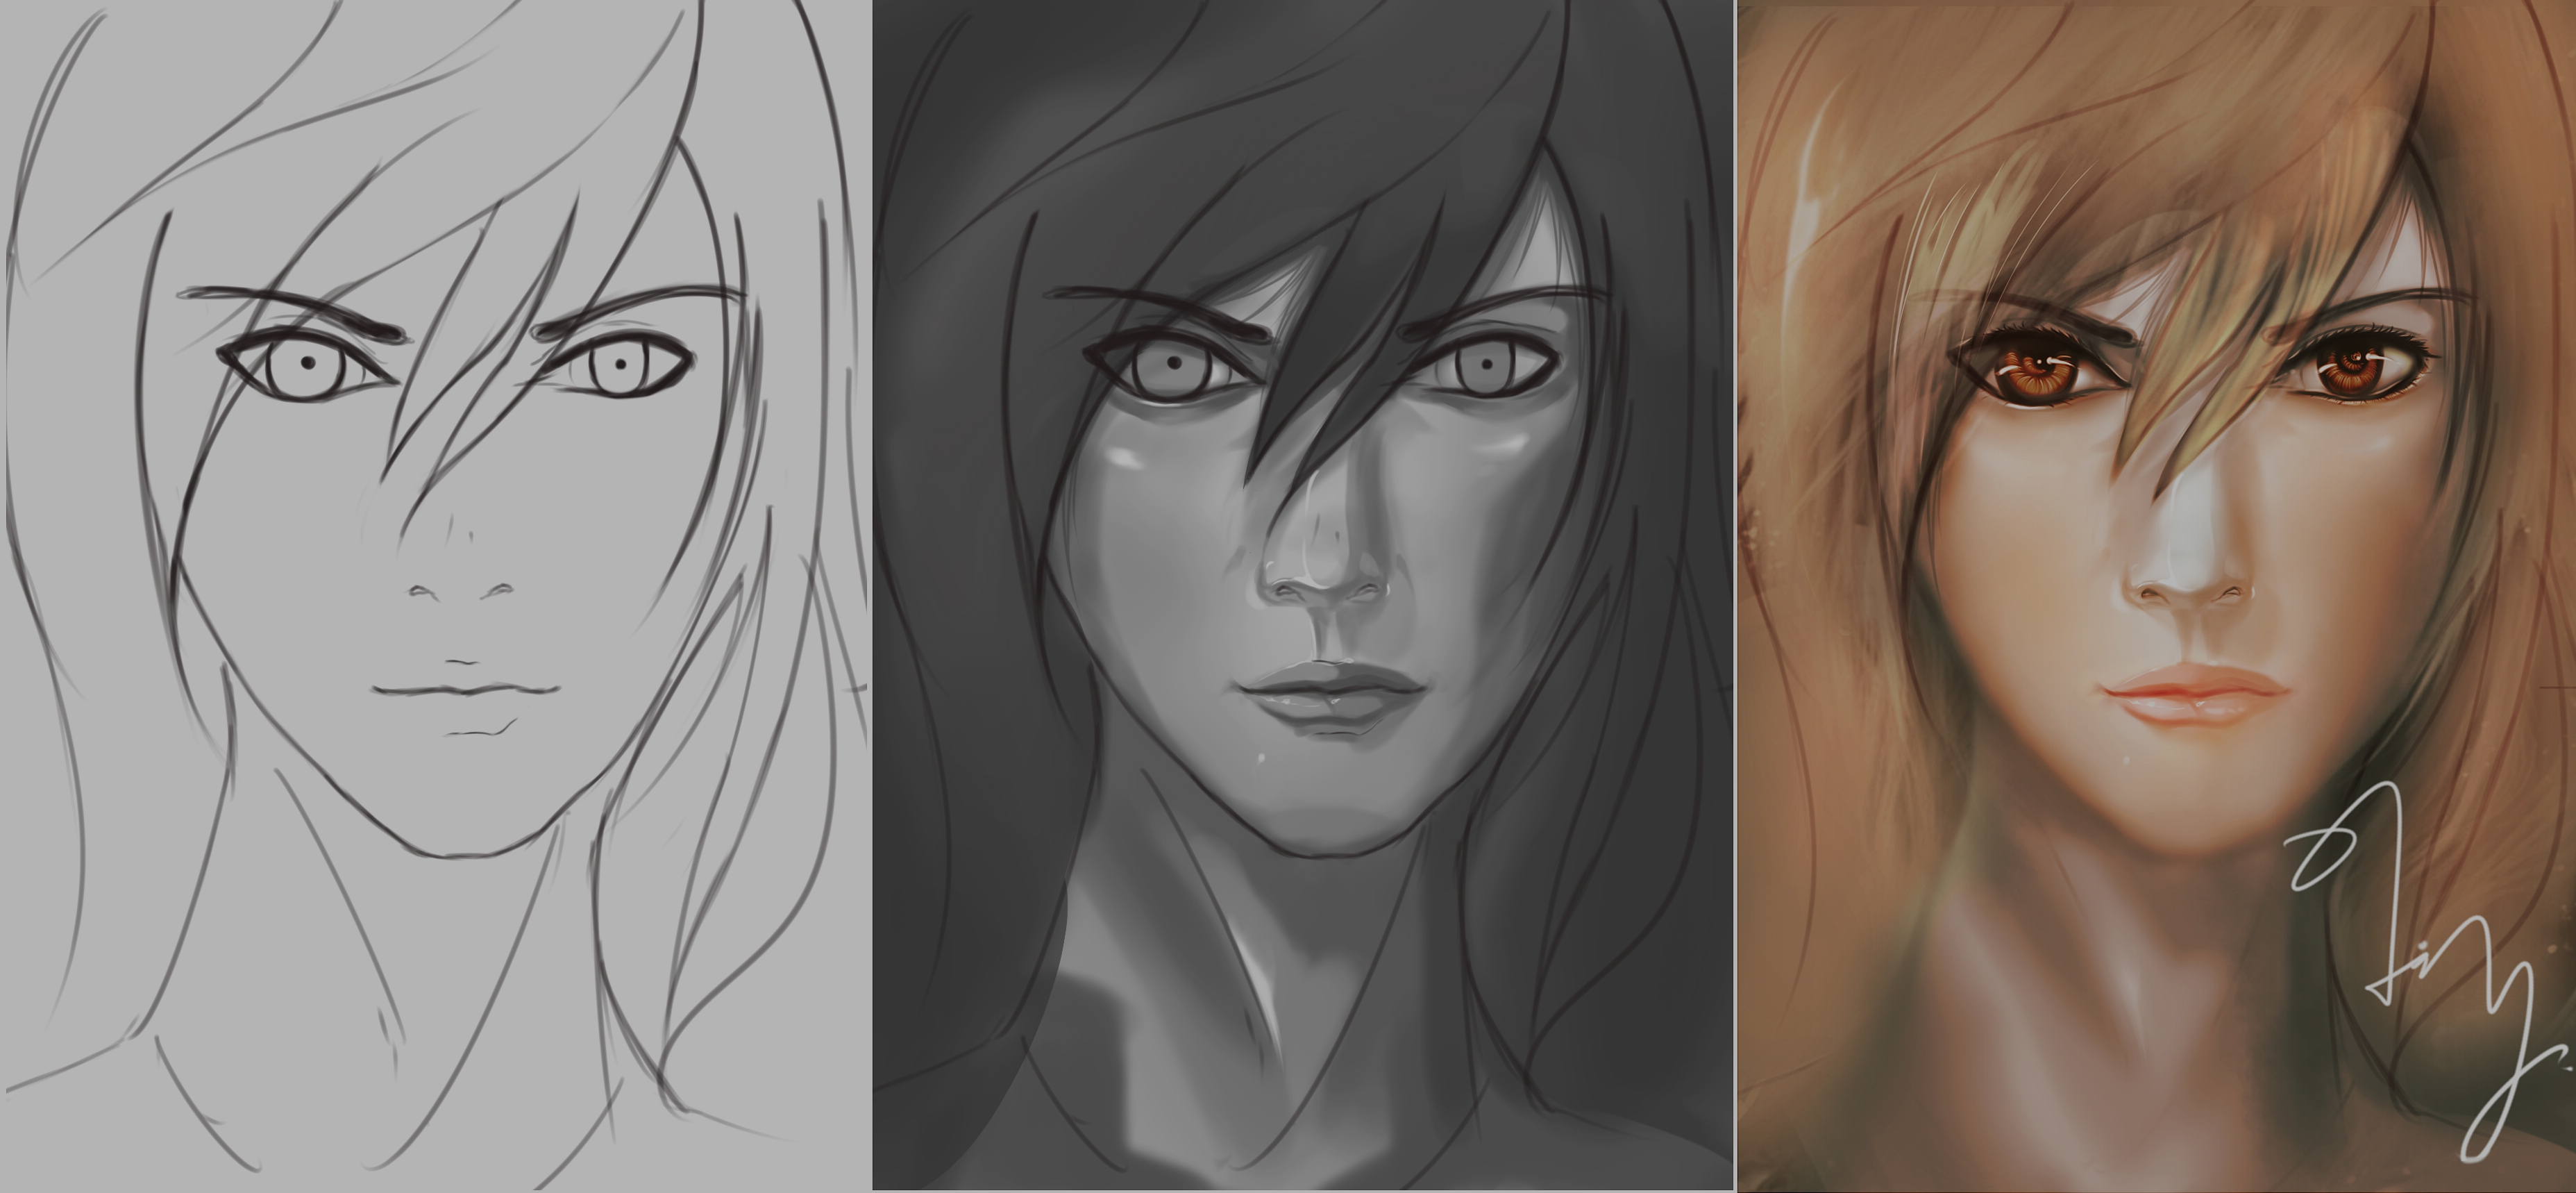 Grayscale Coloring test by RainartLin on DeviantArt